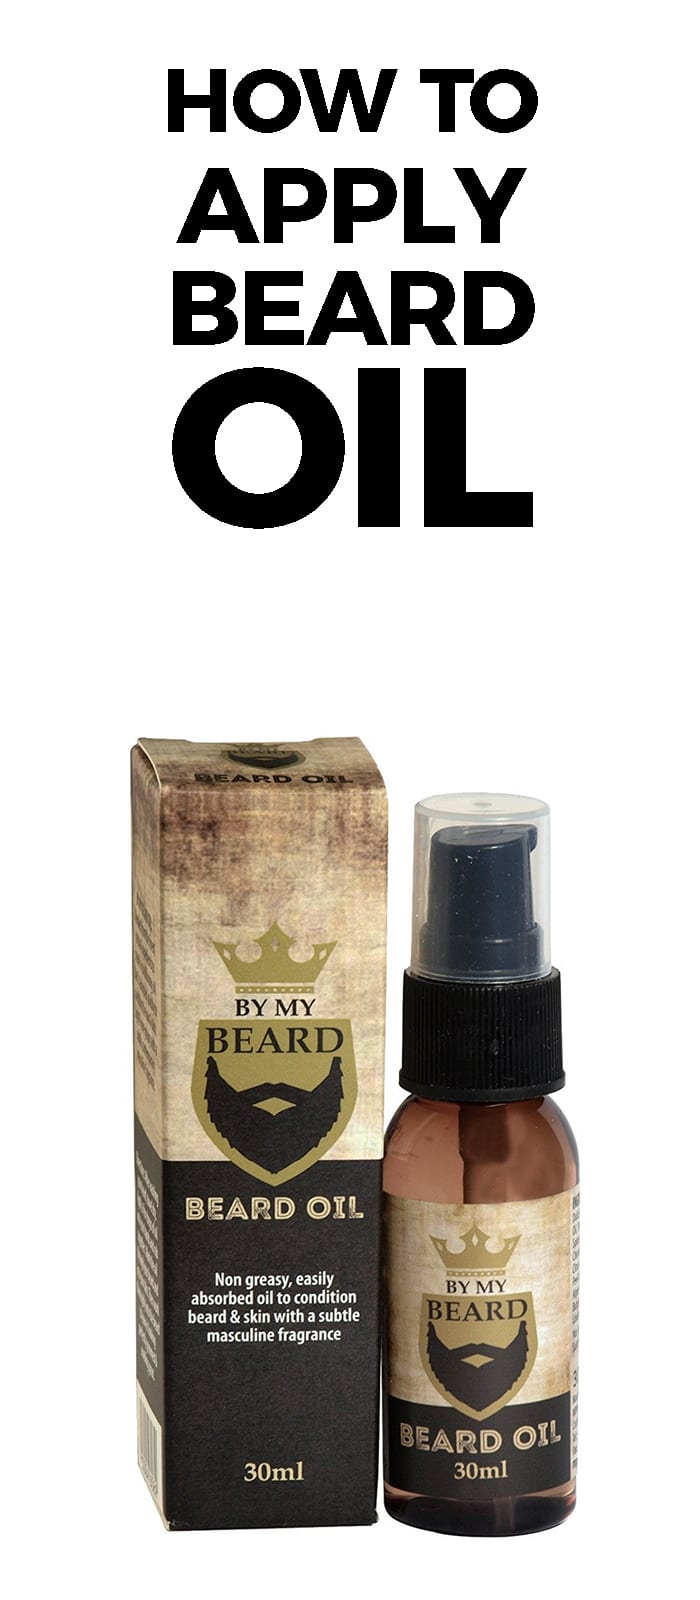 How To Apply Beard Oil.